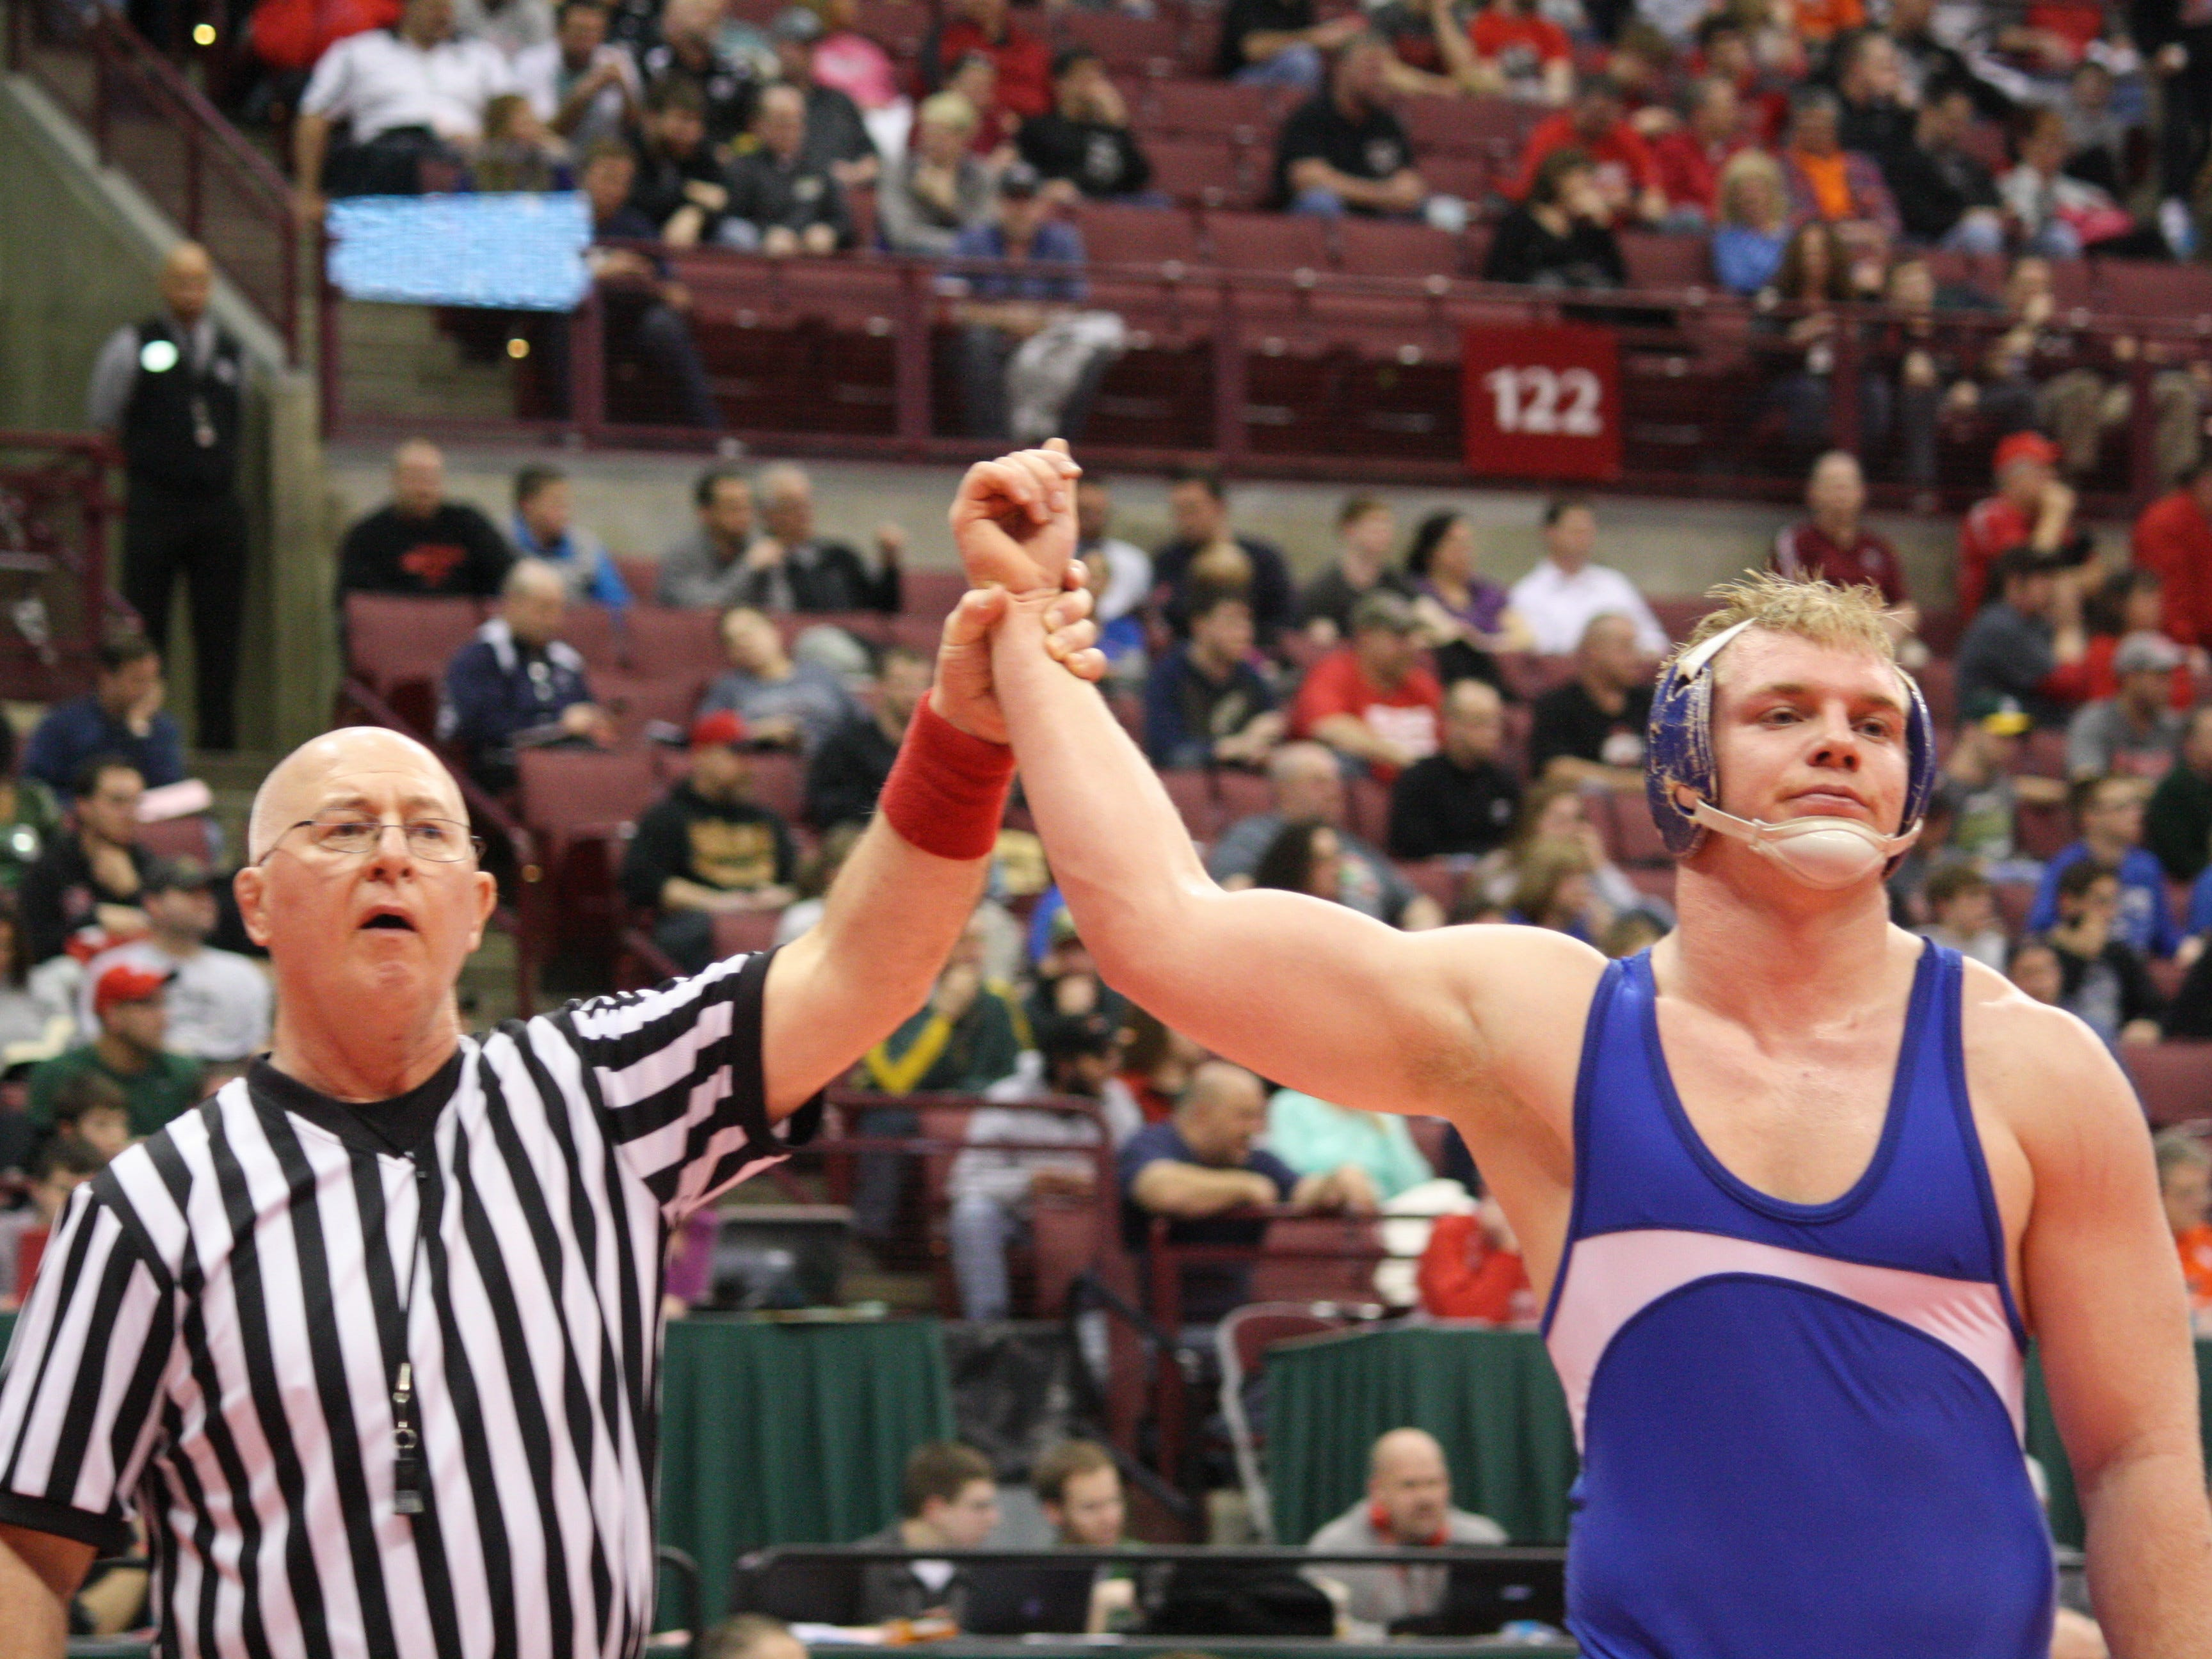 St. Xavier senior Cole Jones won his Division I semifinal at 220 pounds to make it to the state final March 13 in Columbus. On March 14, Jones won the state title 3-1 in overtime.